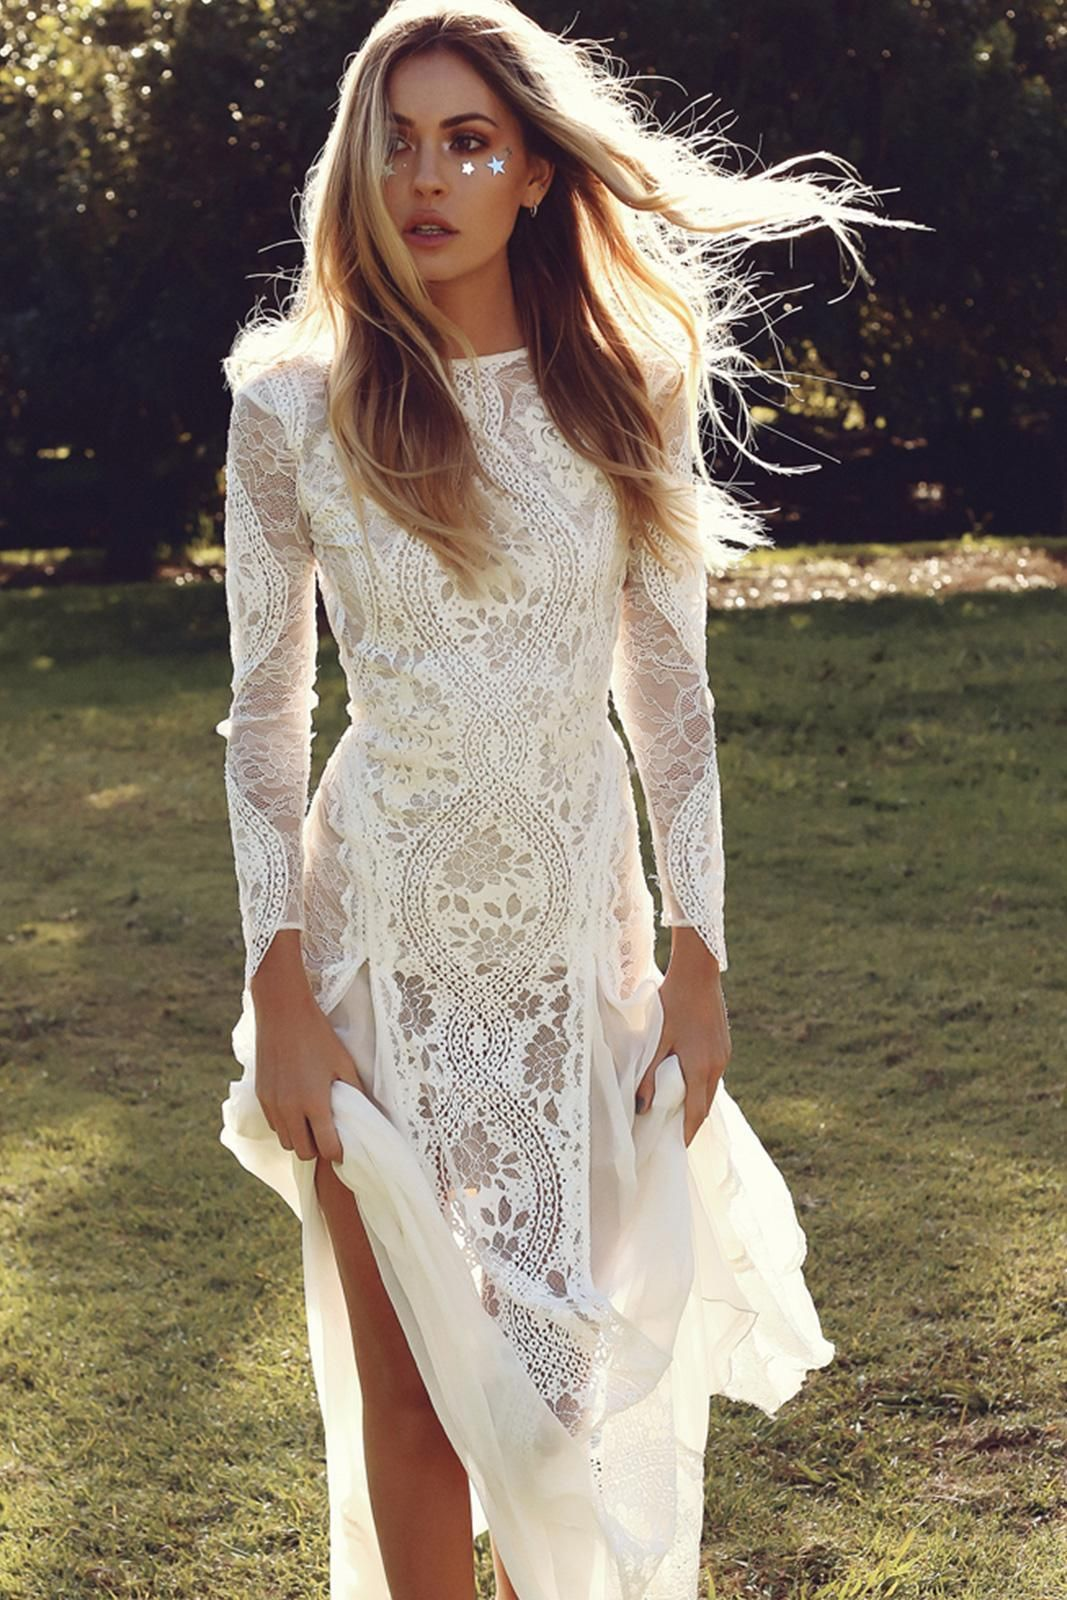 Lace Bohemian Wedding Dresses French Lace Long Sleeve Boho Chic Dress Open Back Bridal Gowns vestido de noiva 2017 Bohemian Long Sleeve Open Back Brautkleid